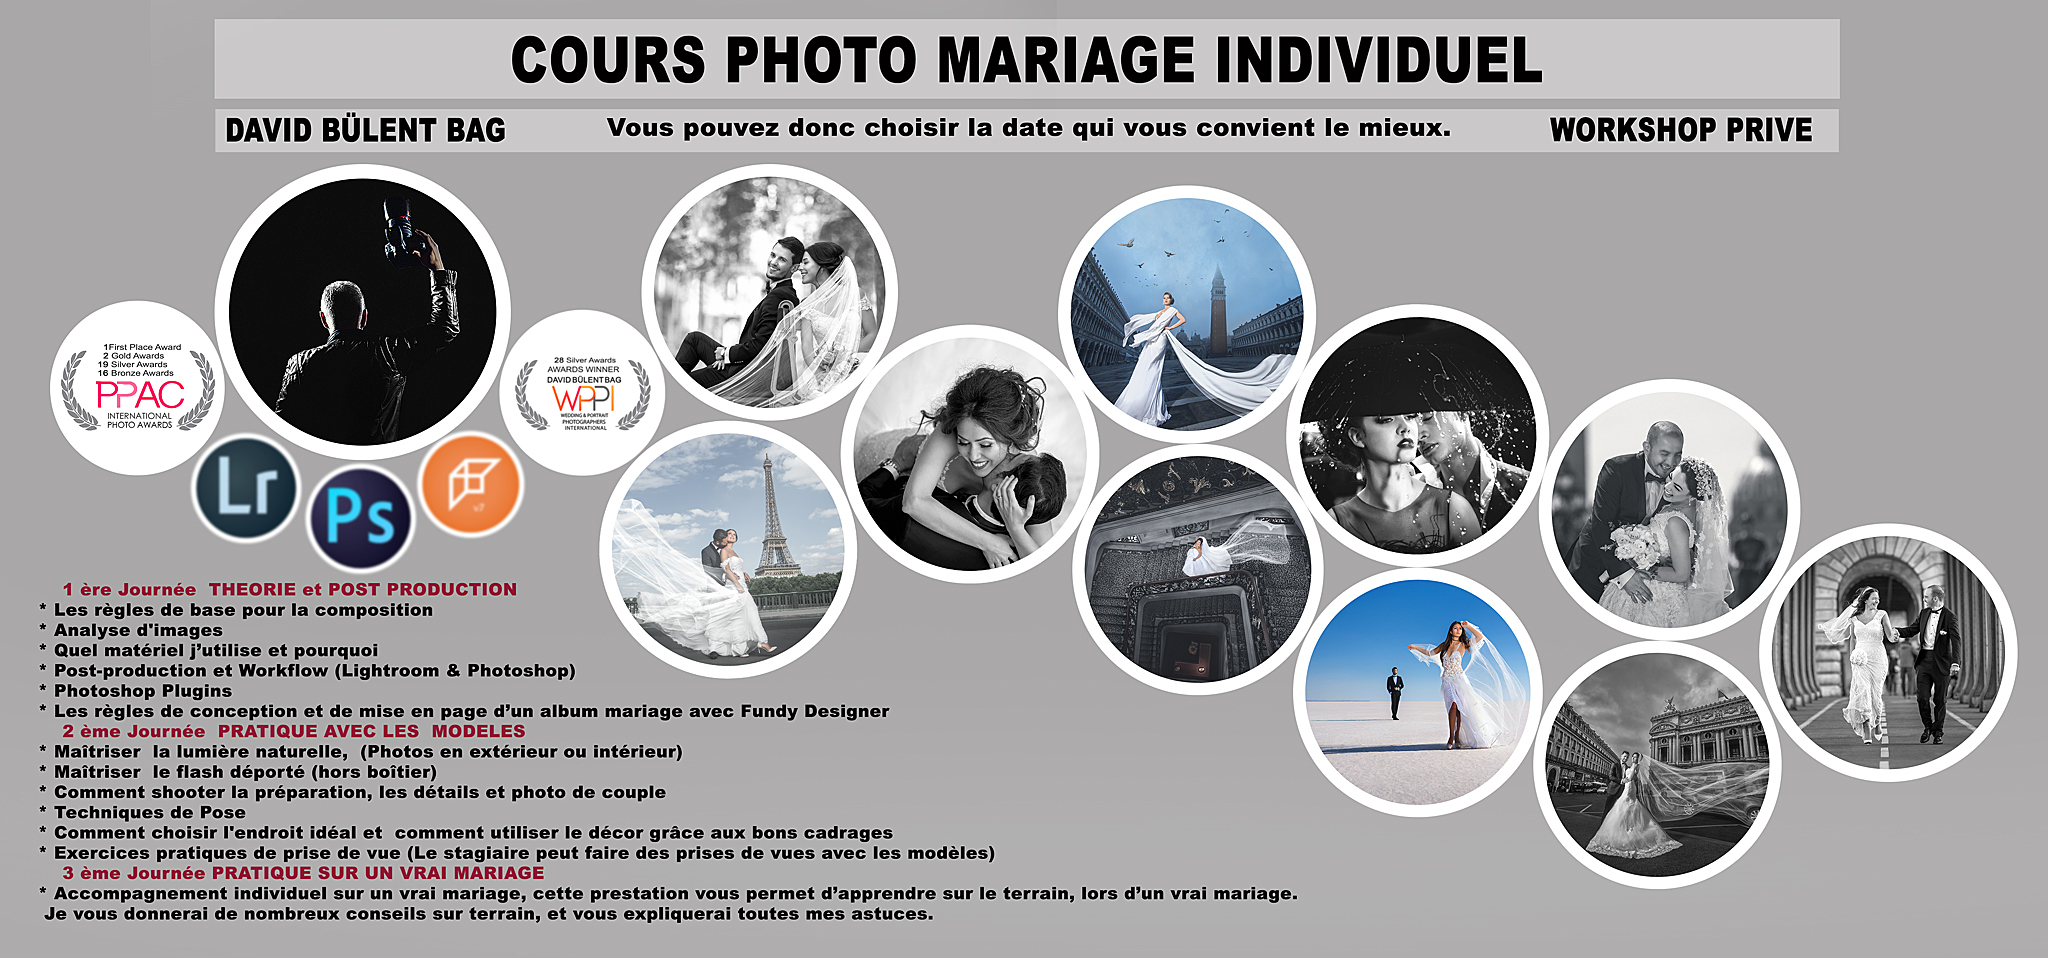 WORKSHOP PRIVE | COURS PHOTO MARIAGE INDIVIDUEL | COURS PHOTO_MARIAGE_INDIVIDUEL.jpg